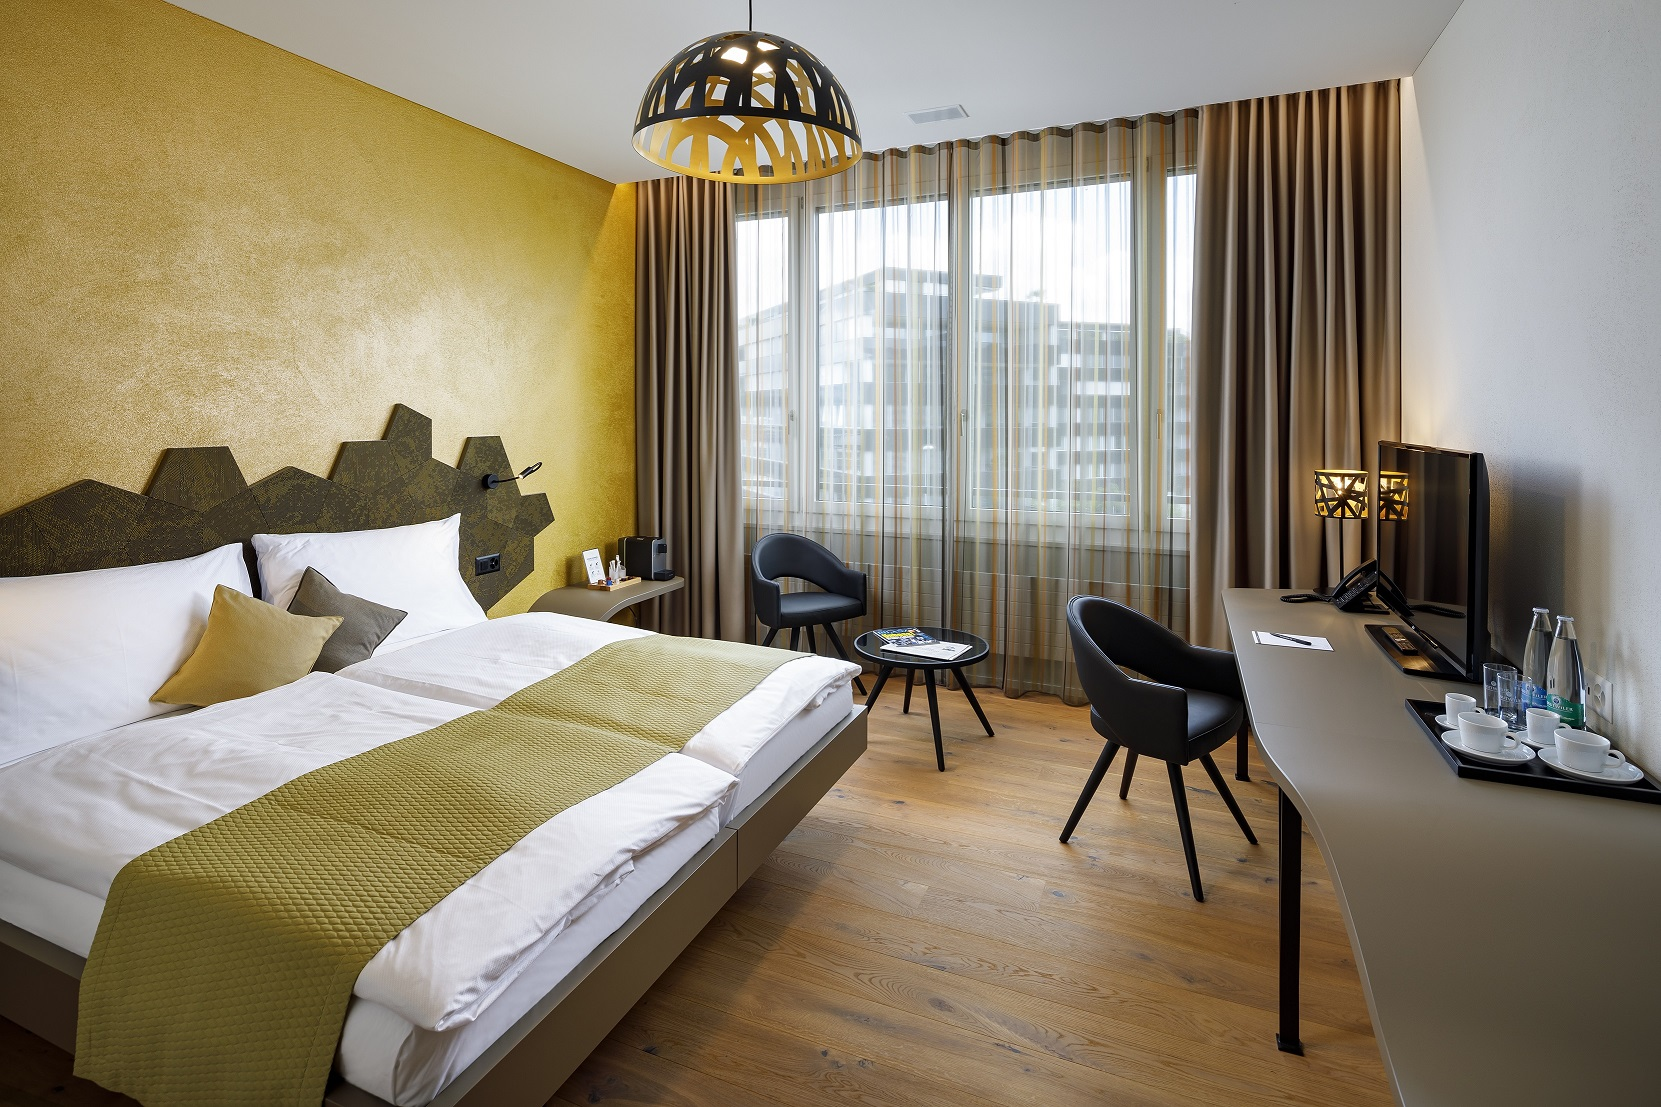 Our new hotel additions - FOCUS Hotel, Sursee (LU) The new 4* hotel is ideally located close to the historic old town and is t